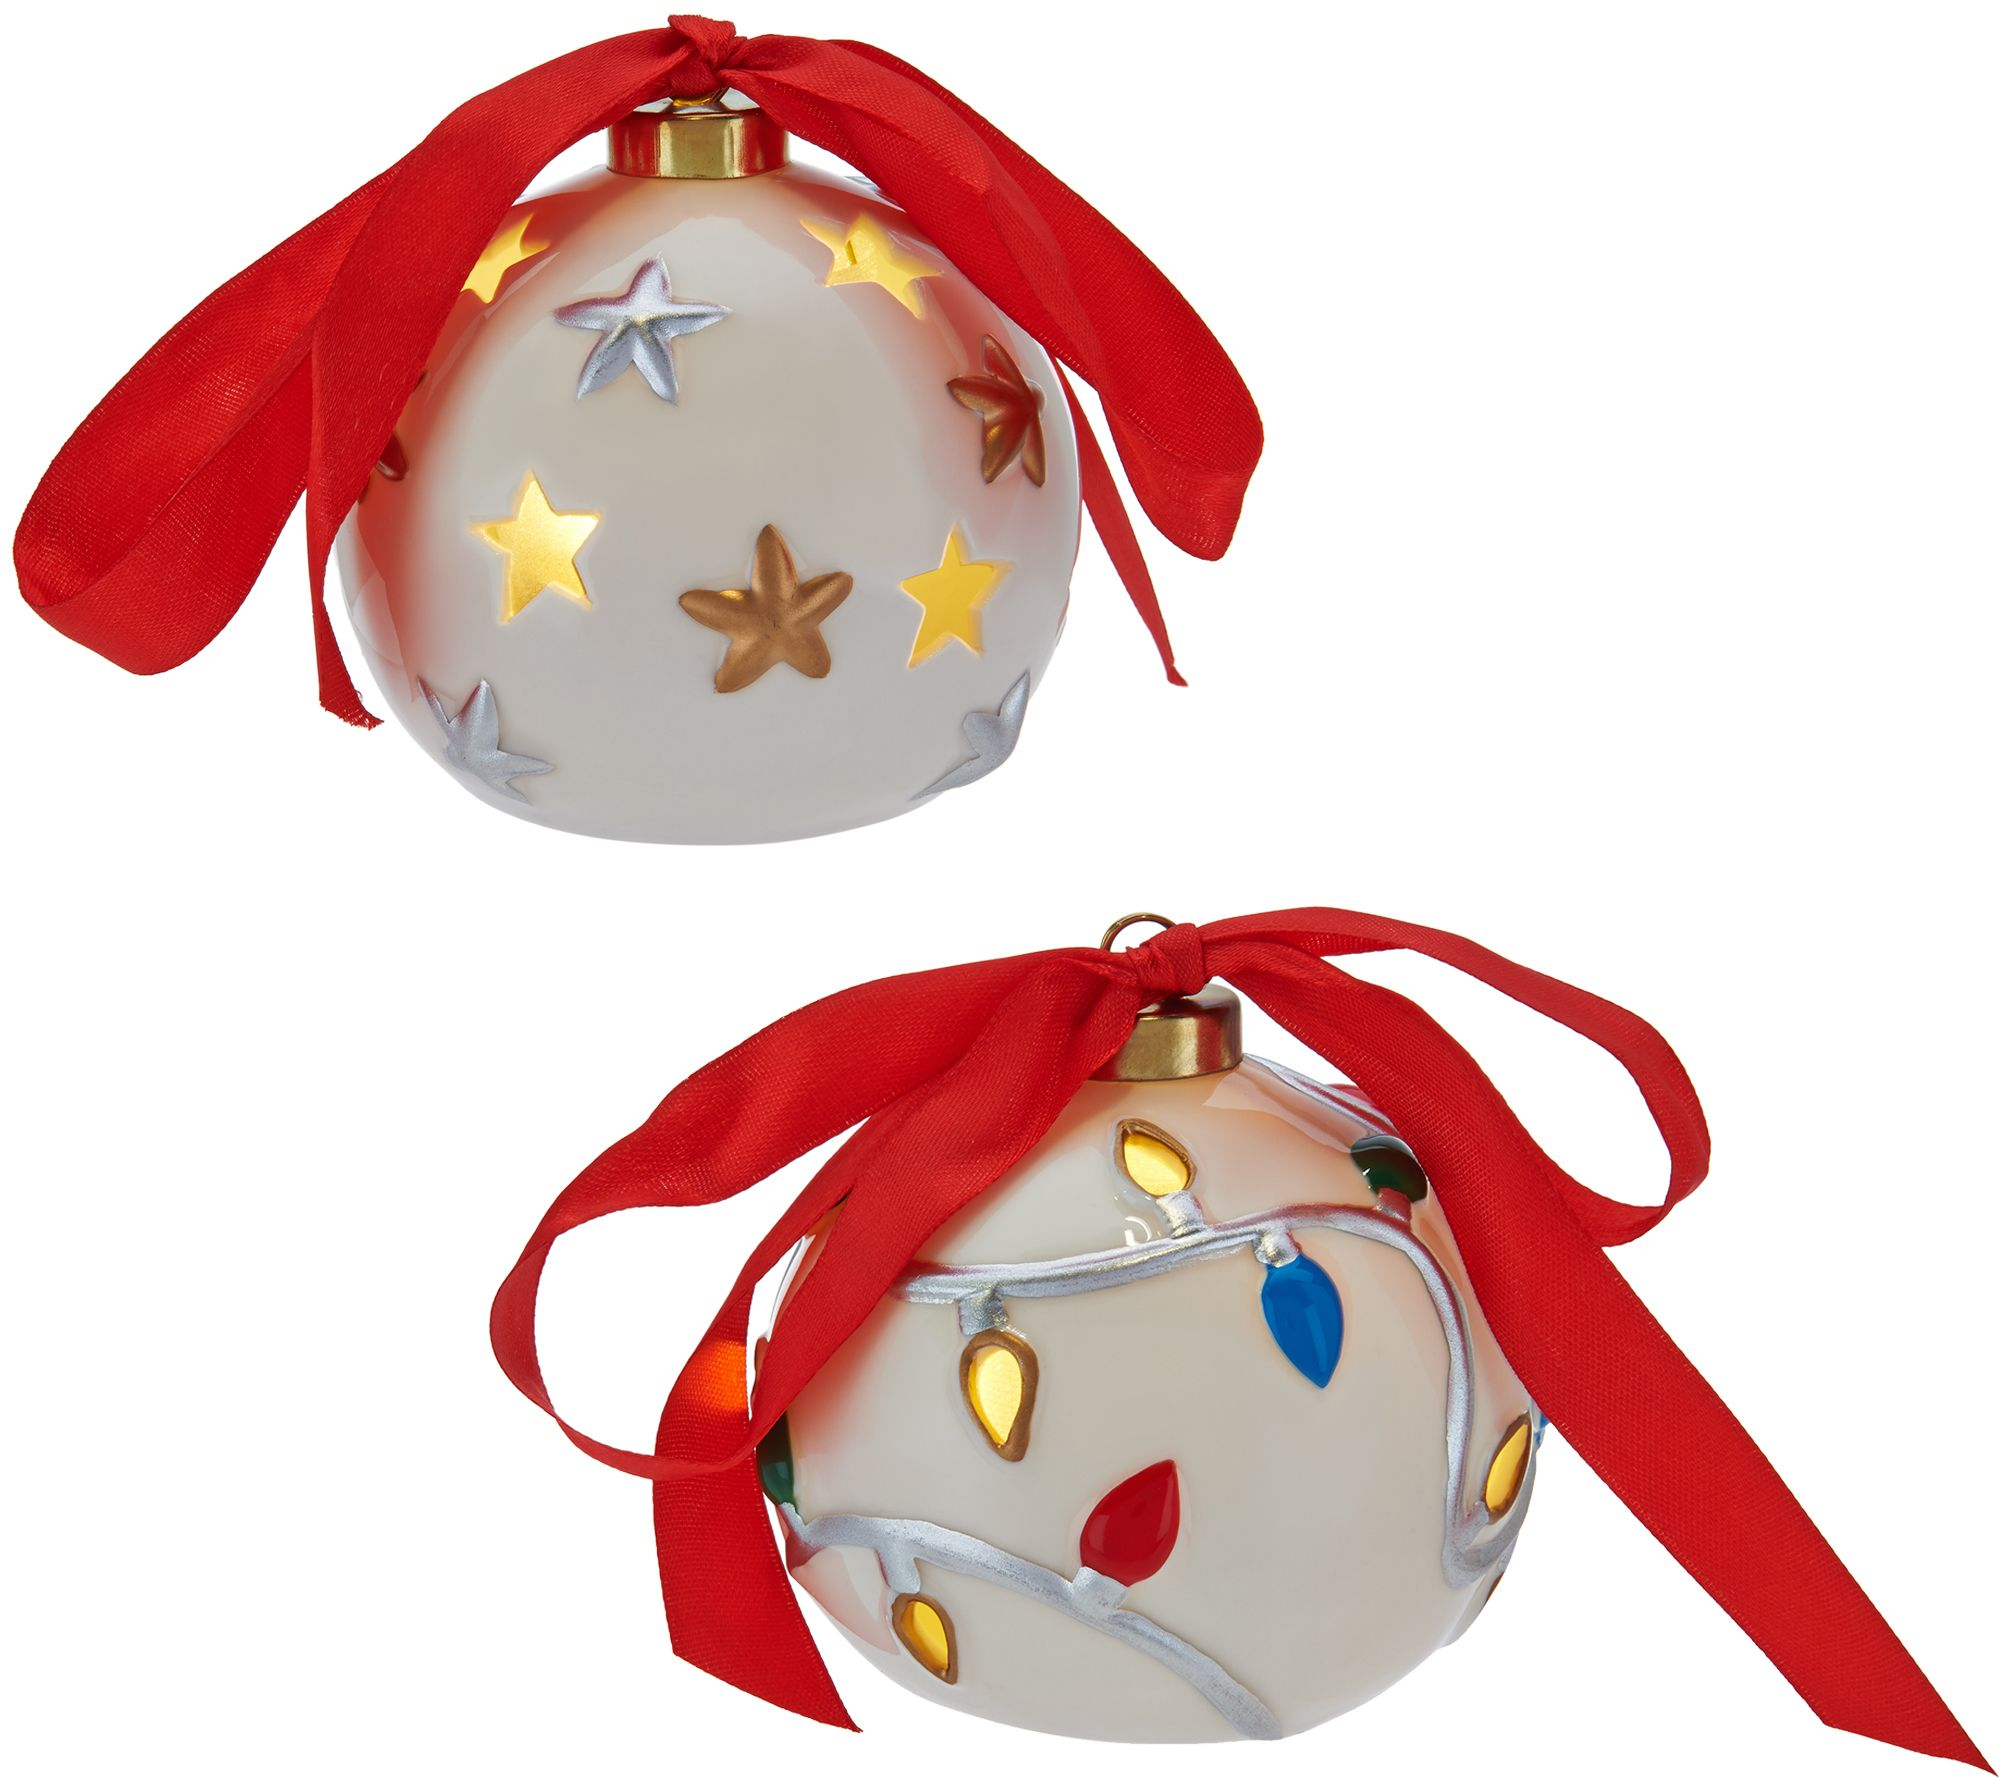 Lightscapes S/5 Lit Pierced Porcelain Ornaments with Gift Boxes ...